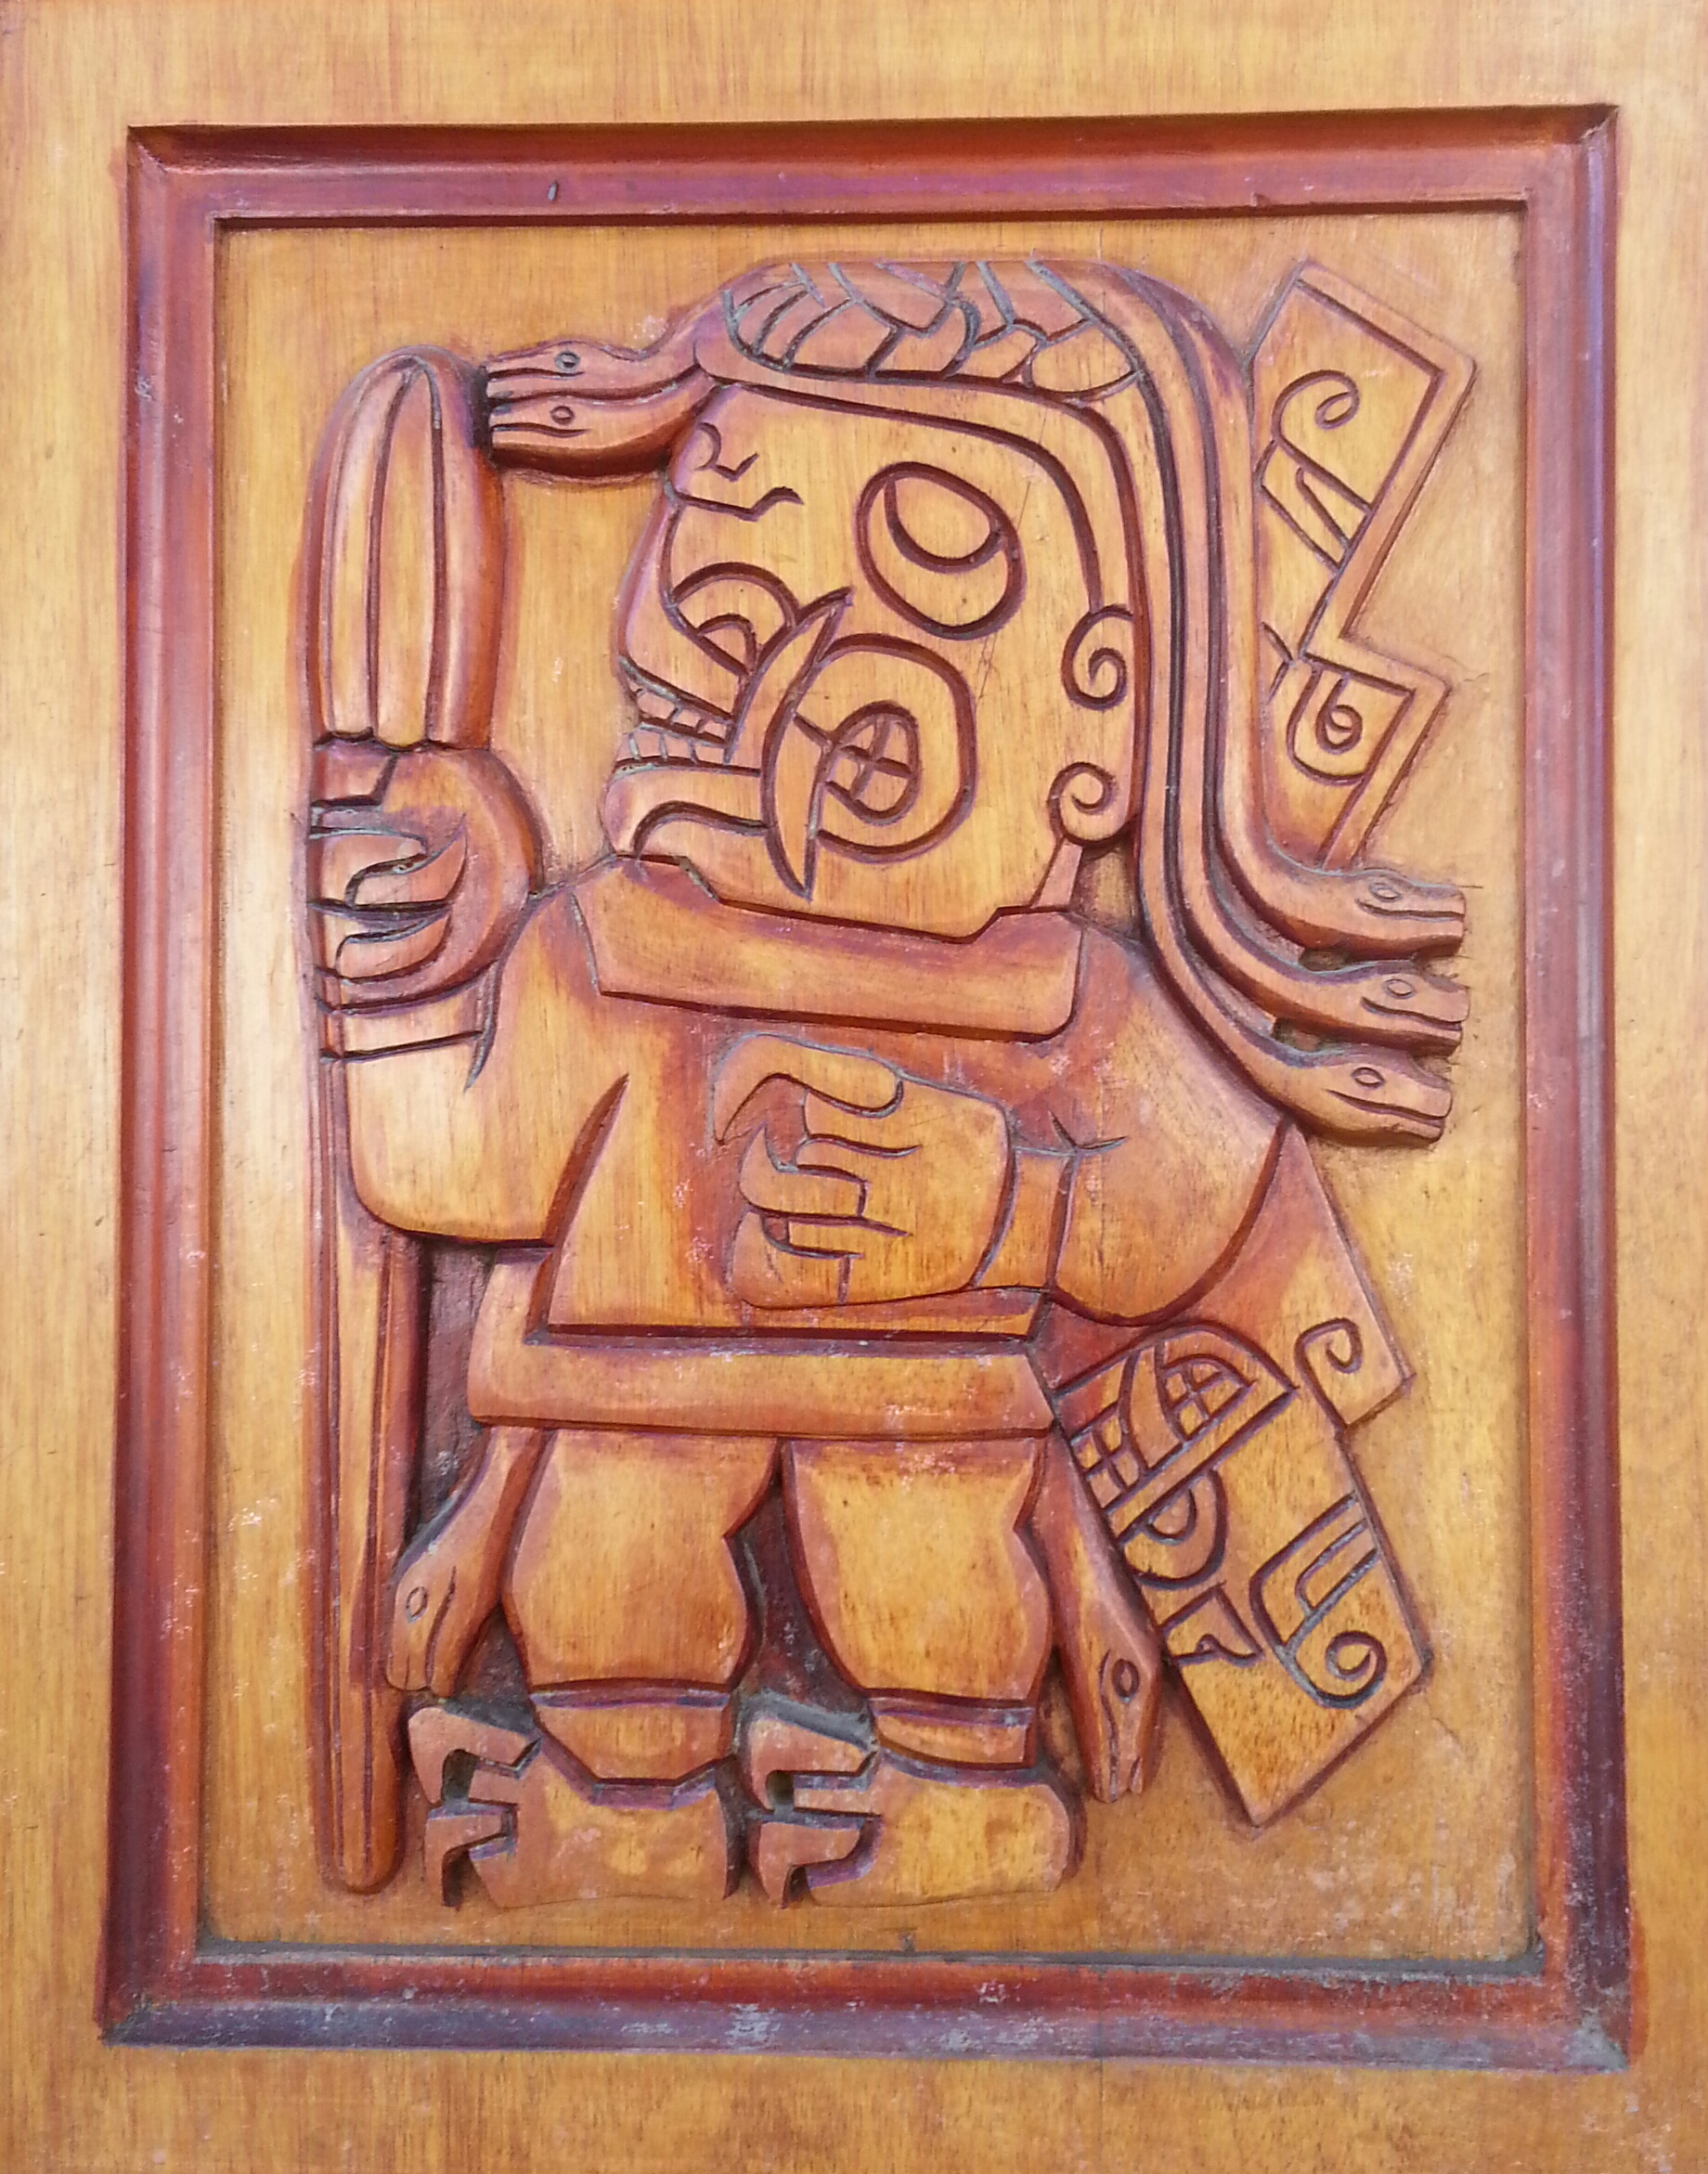 Carving on a door in town of a Chavin deity holding Huachuma.